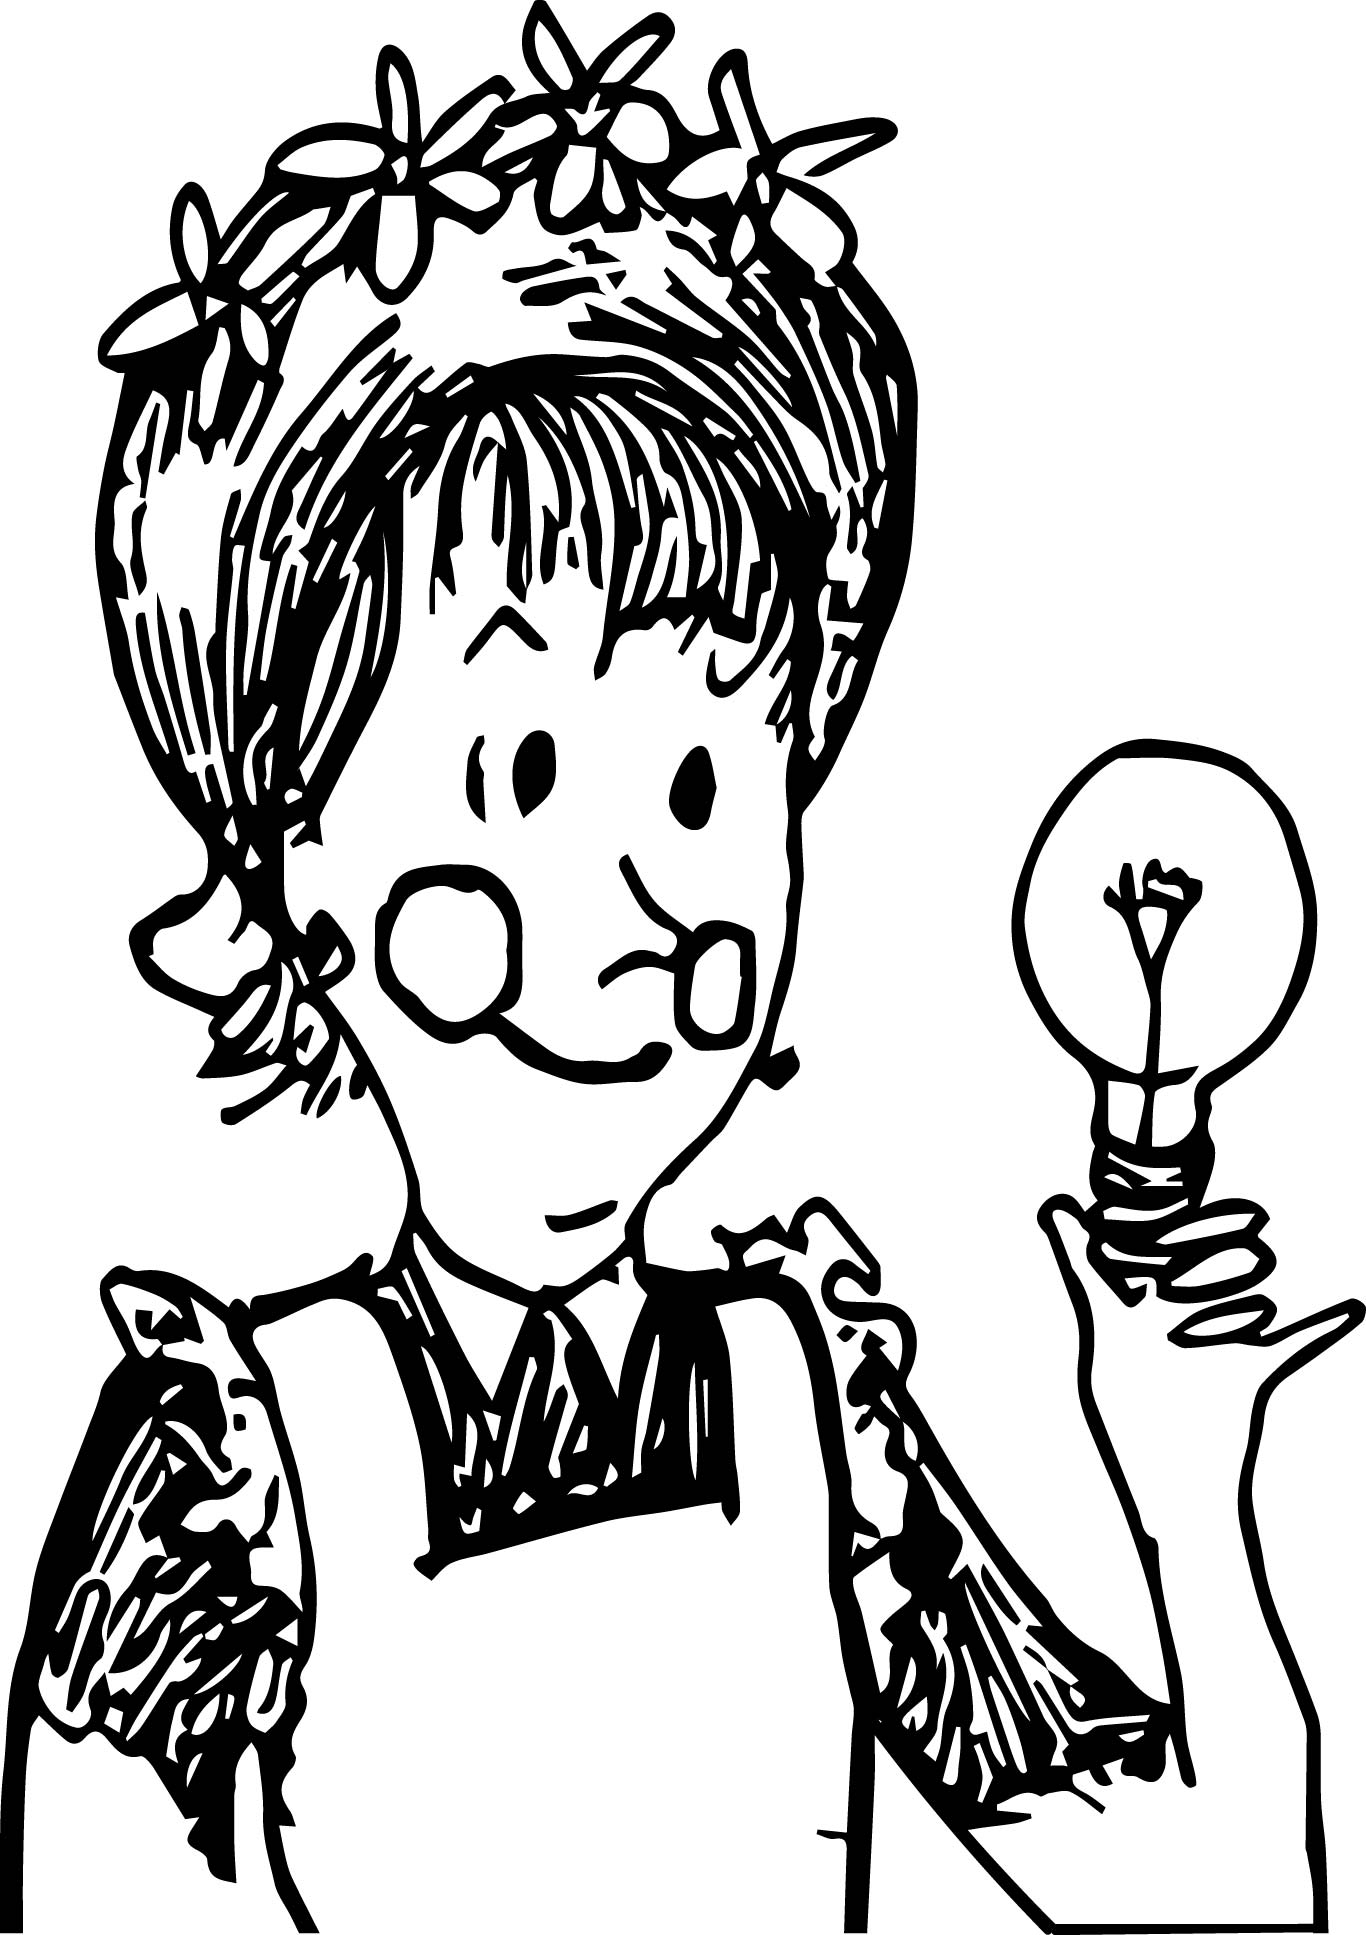 amelia bedelia coloring pages images for adults | Amelia Bedelia Bulb Coloring Page | Wecoloringpage.com